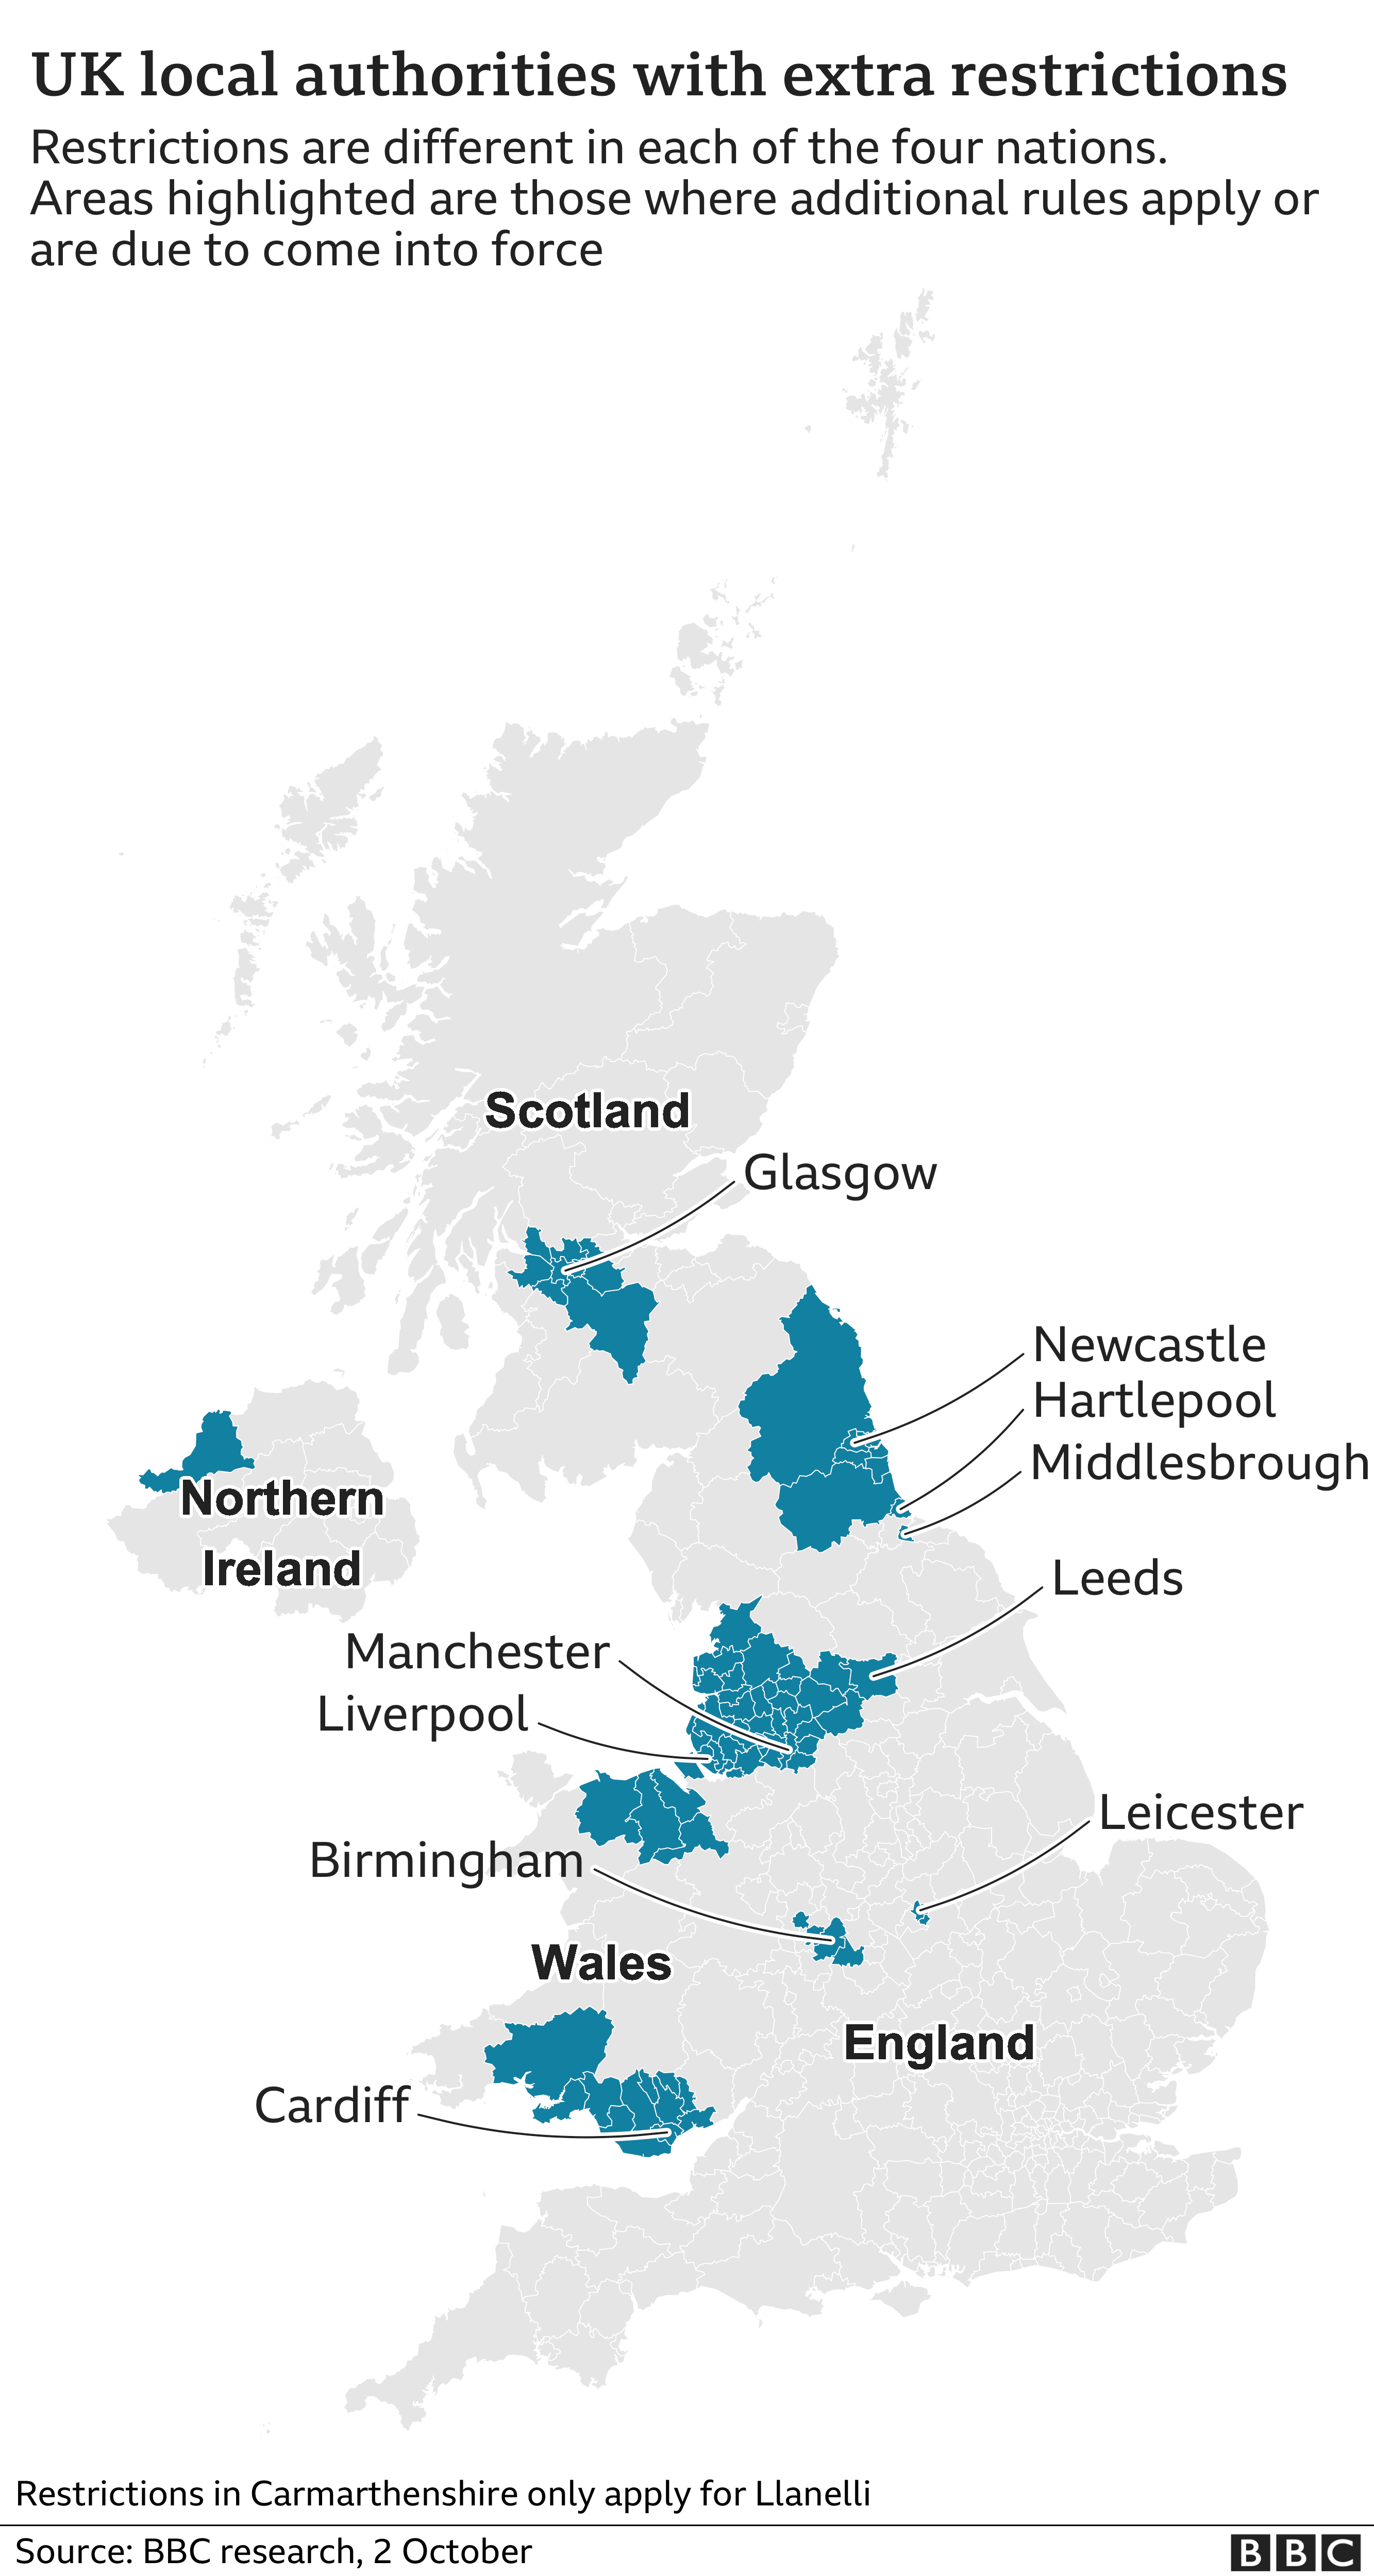 Map showing UK areas with extra local restrictions. Updated 2 October.